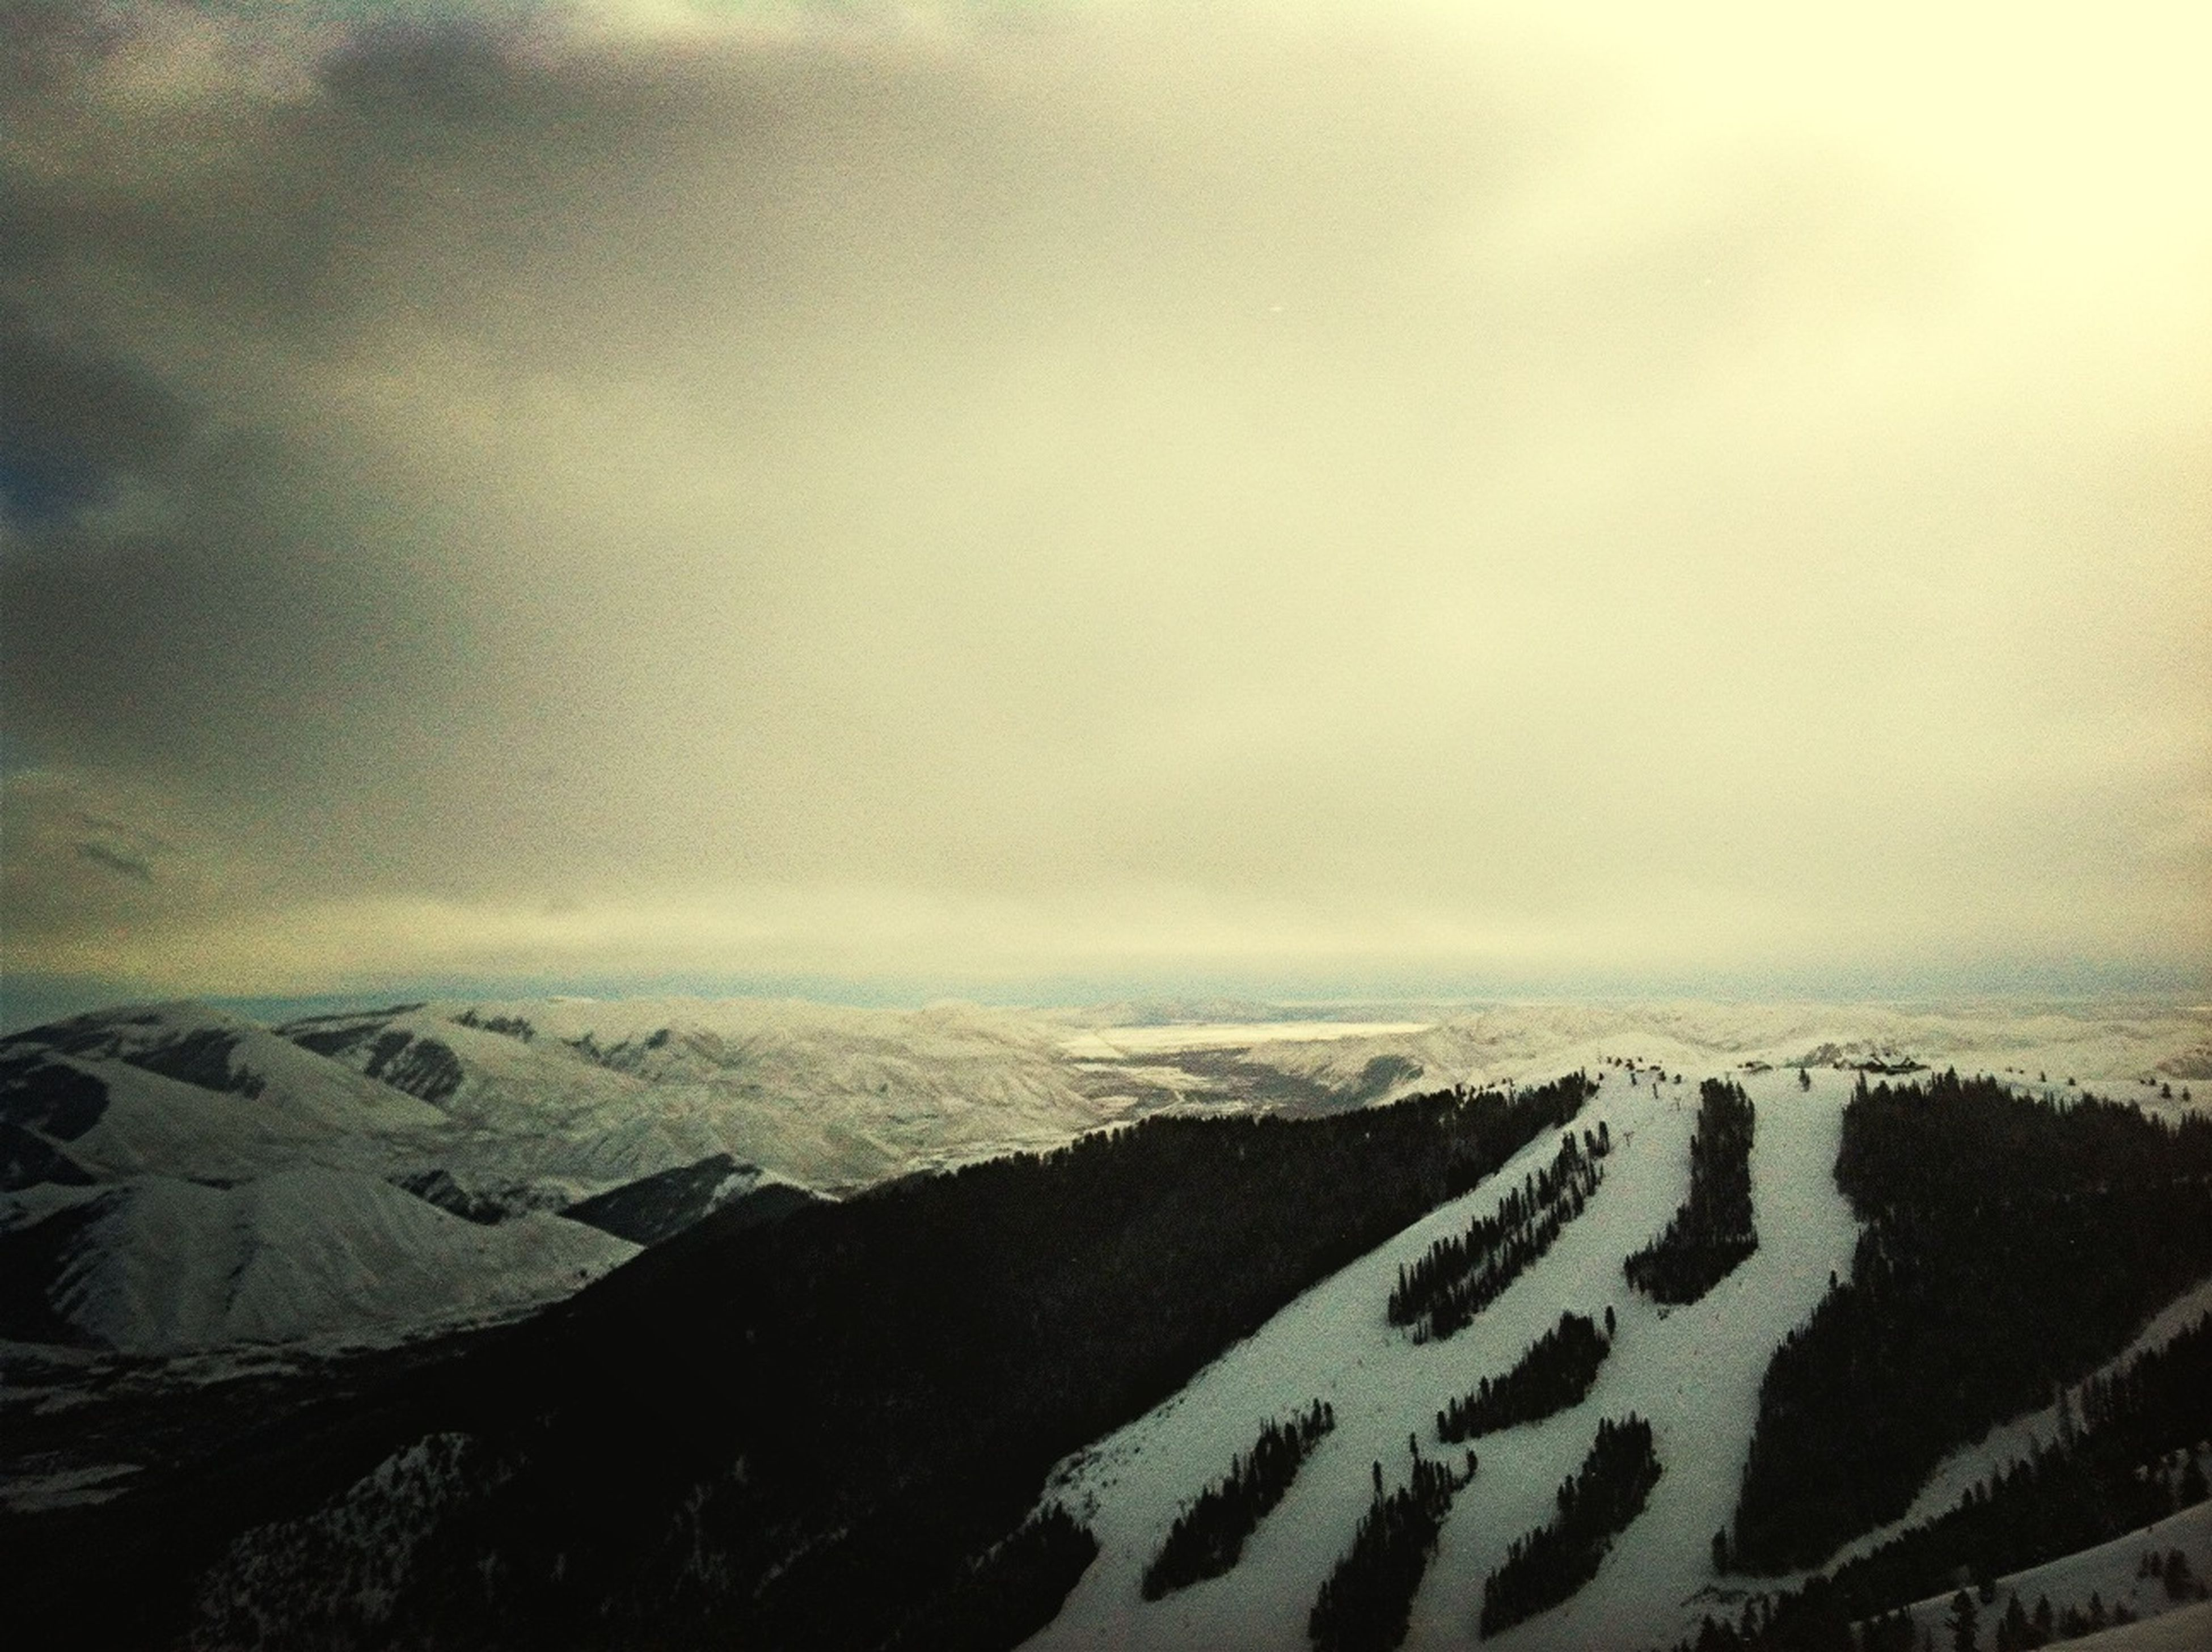 Snowboarding On Baldy Looking South